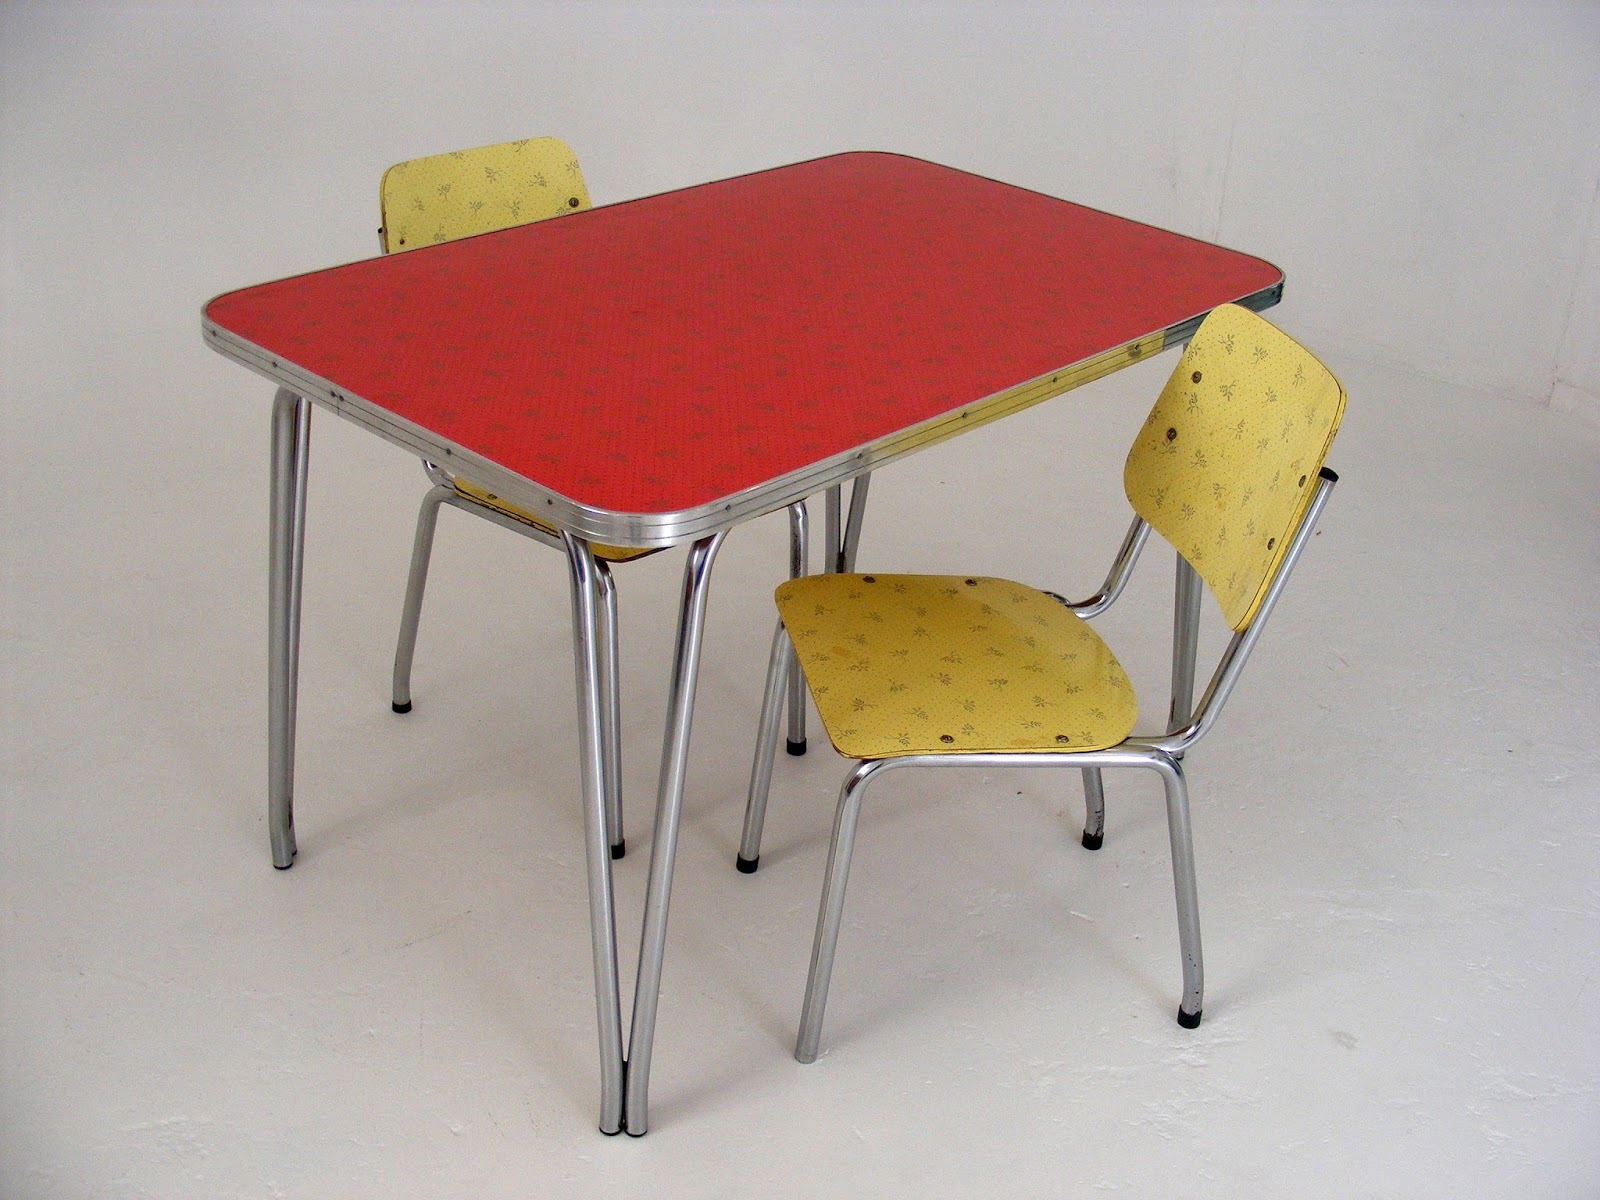 A Red Patterned Formica Kitchen Table With 2 Yellow Formica Chairs In Great  Original Vintage Condition.